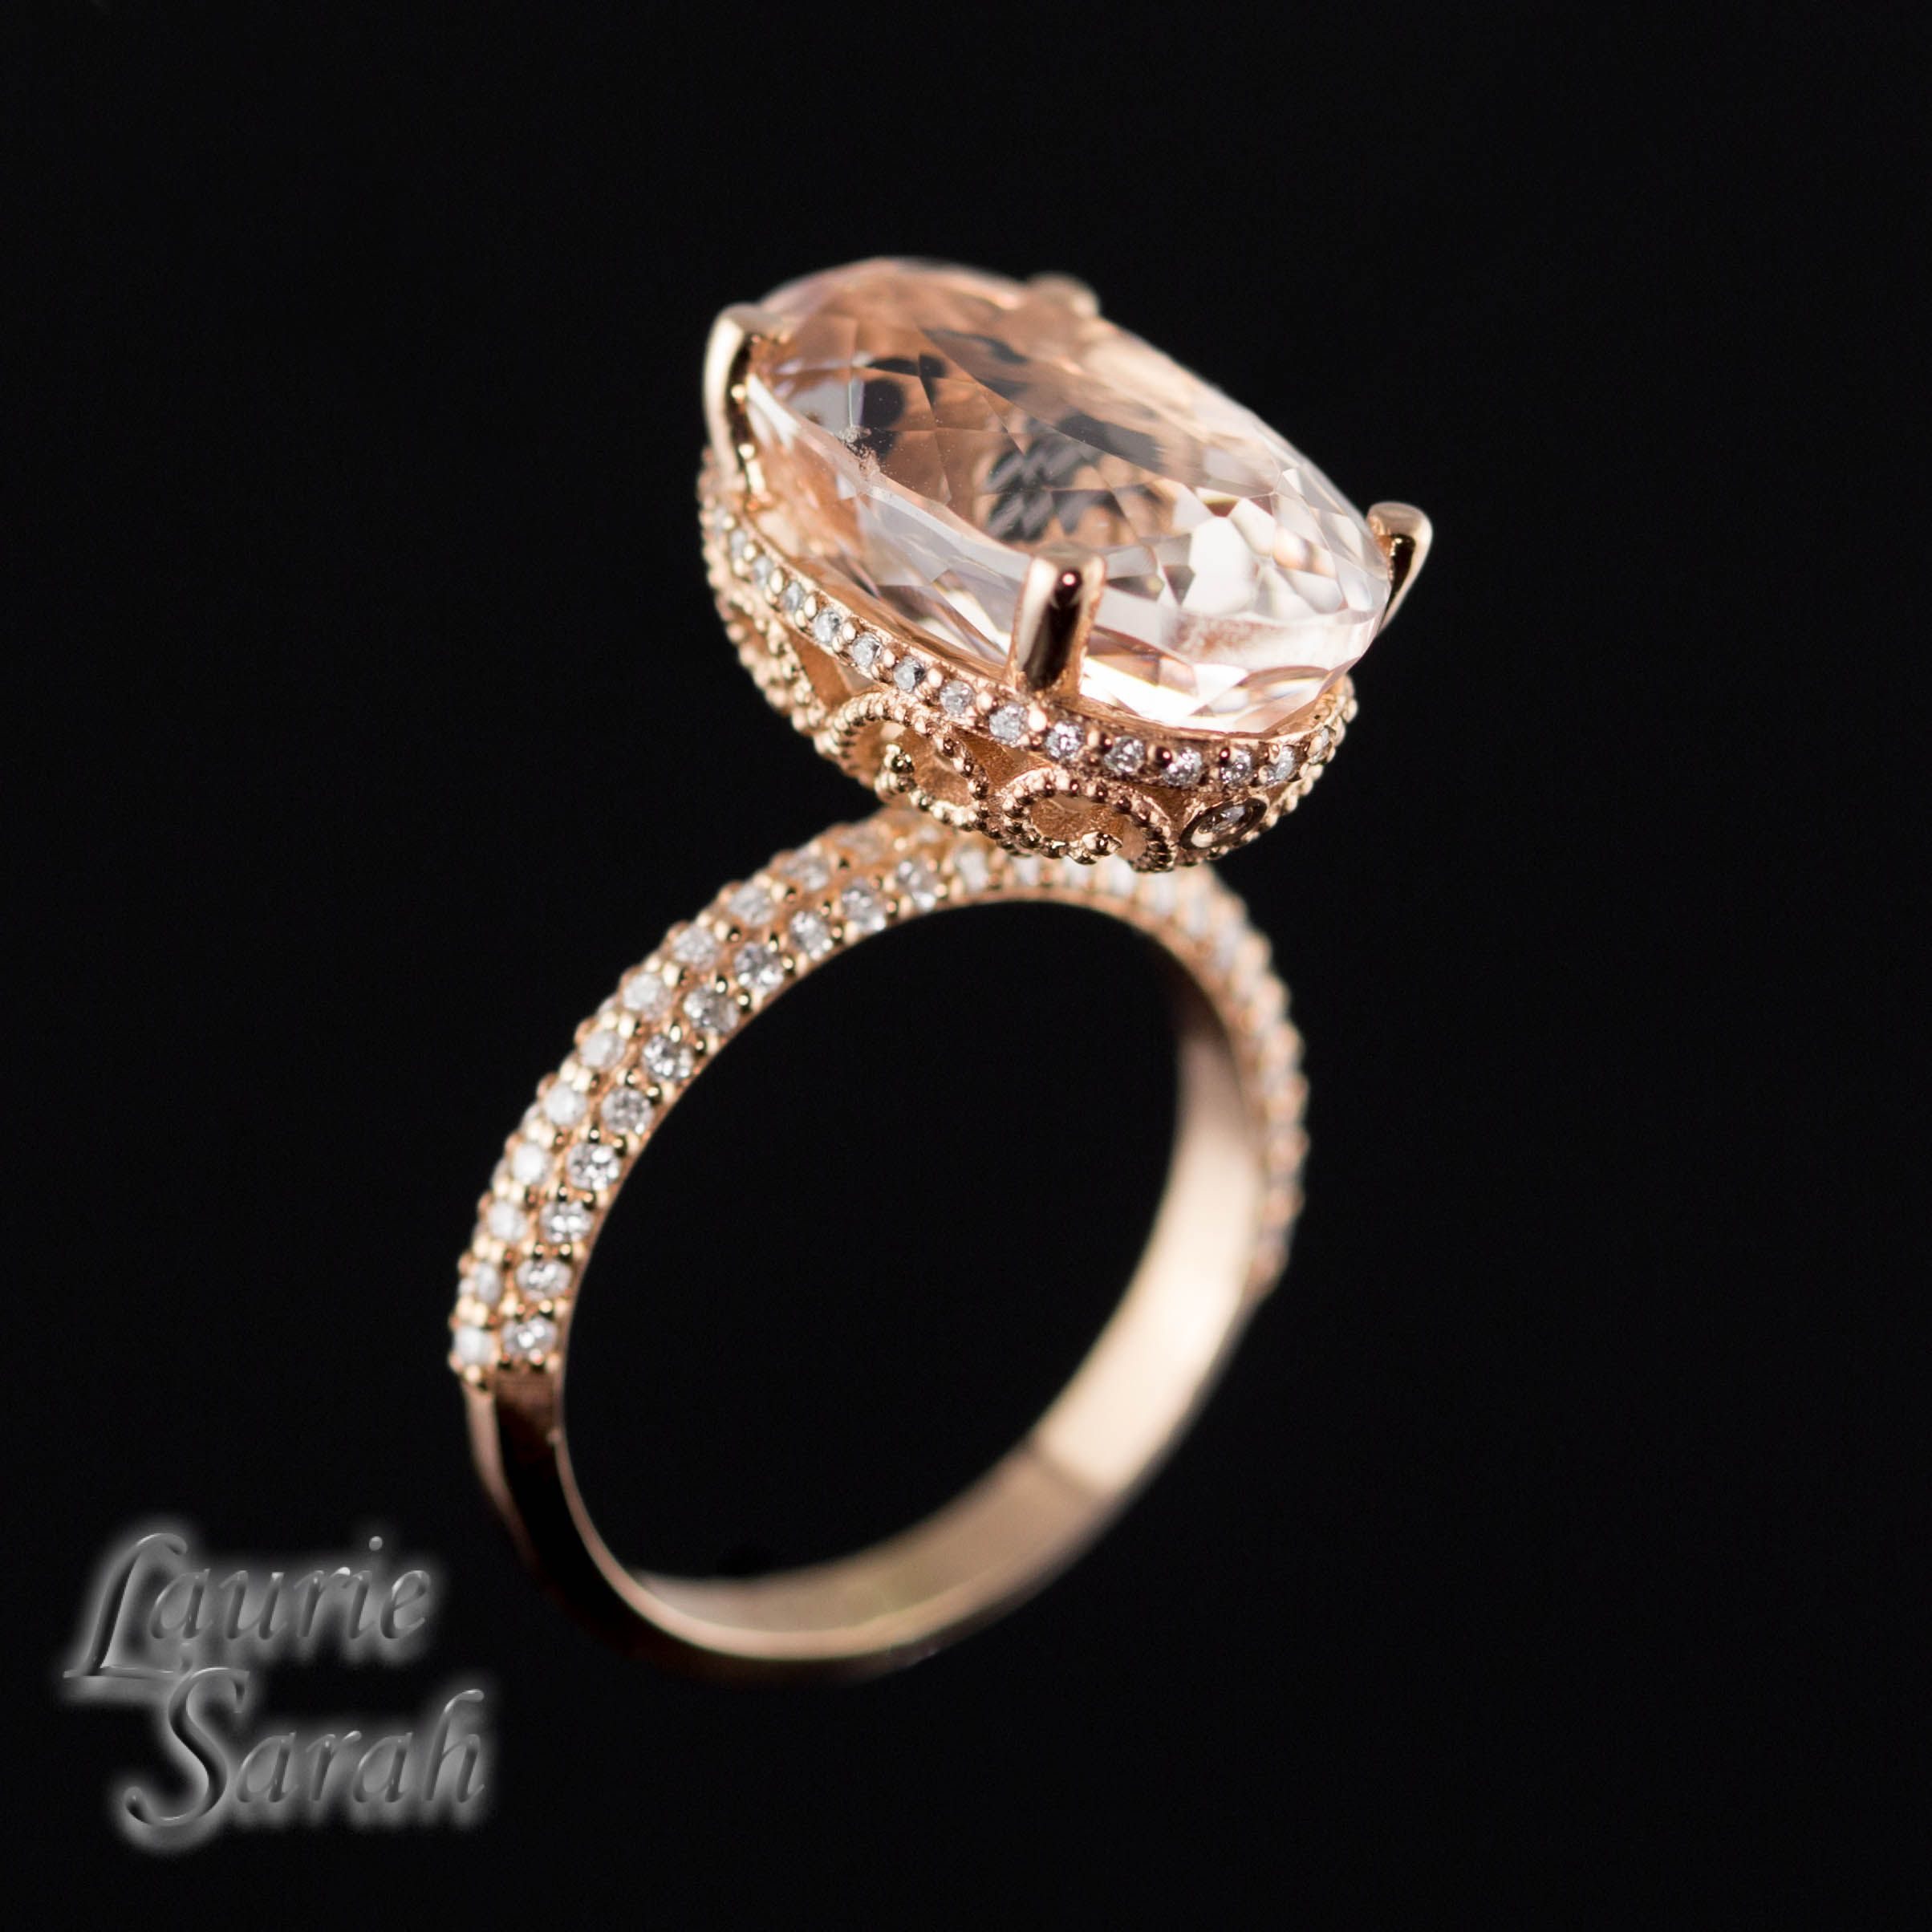 Our Blake Lively Inspired 7 Carat Morganite Engagement Ring With Diamond Set In The Halo And